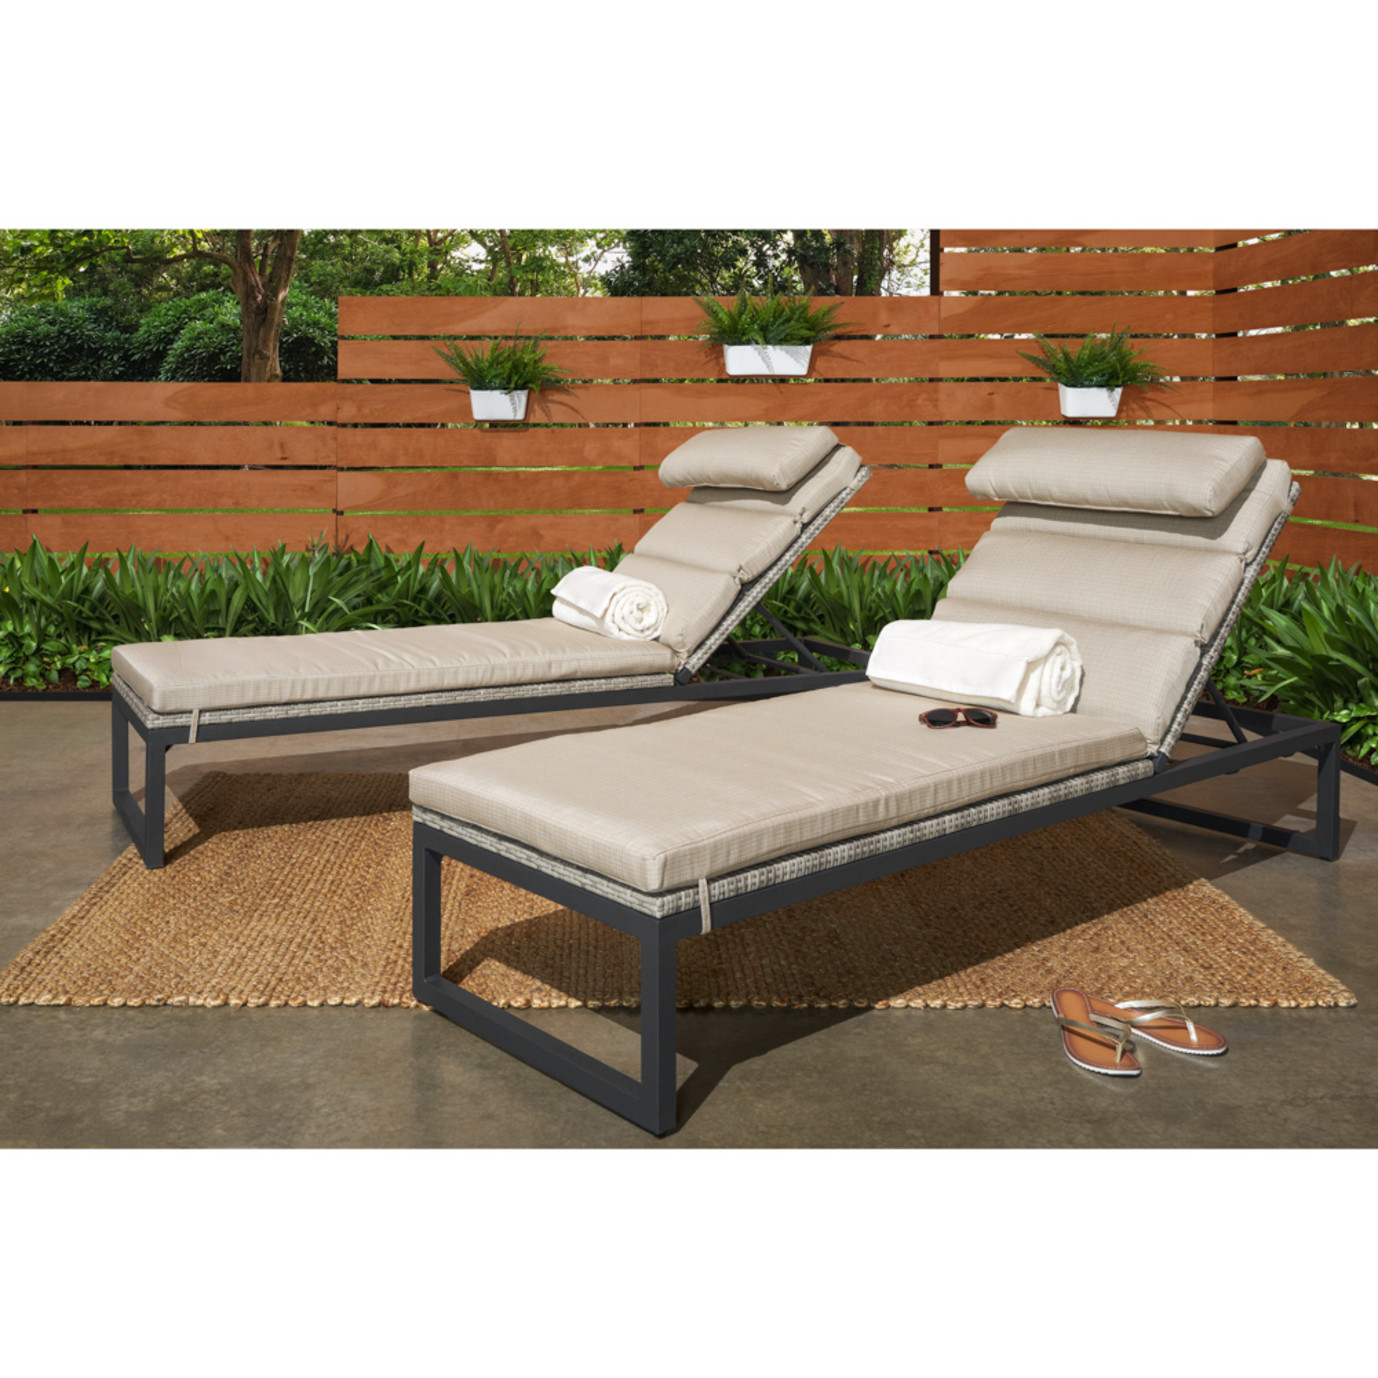 Milo™ Gray Chaise Lounges - Slate Gray